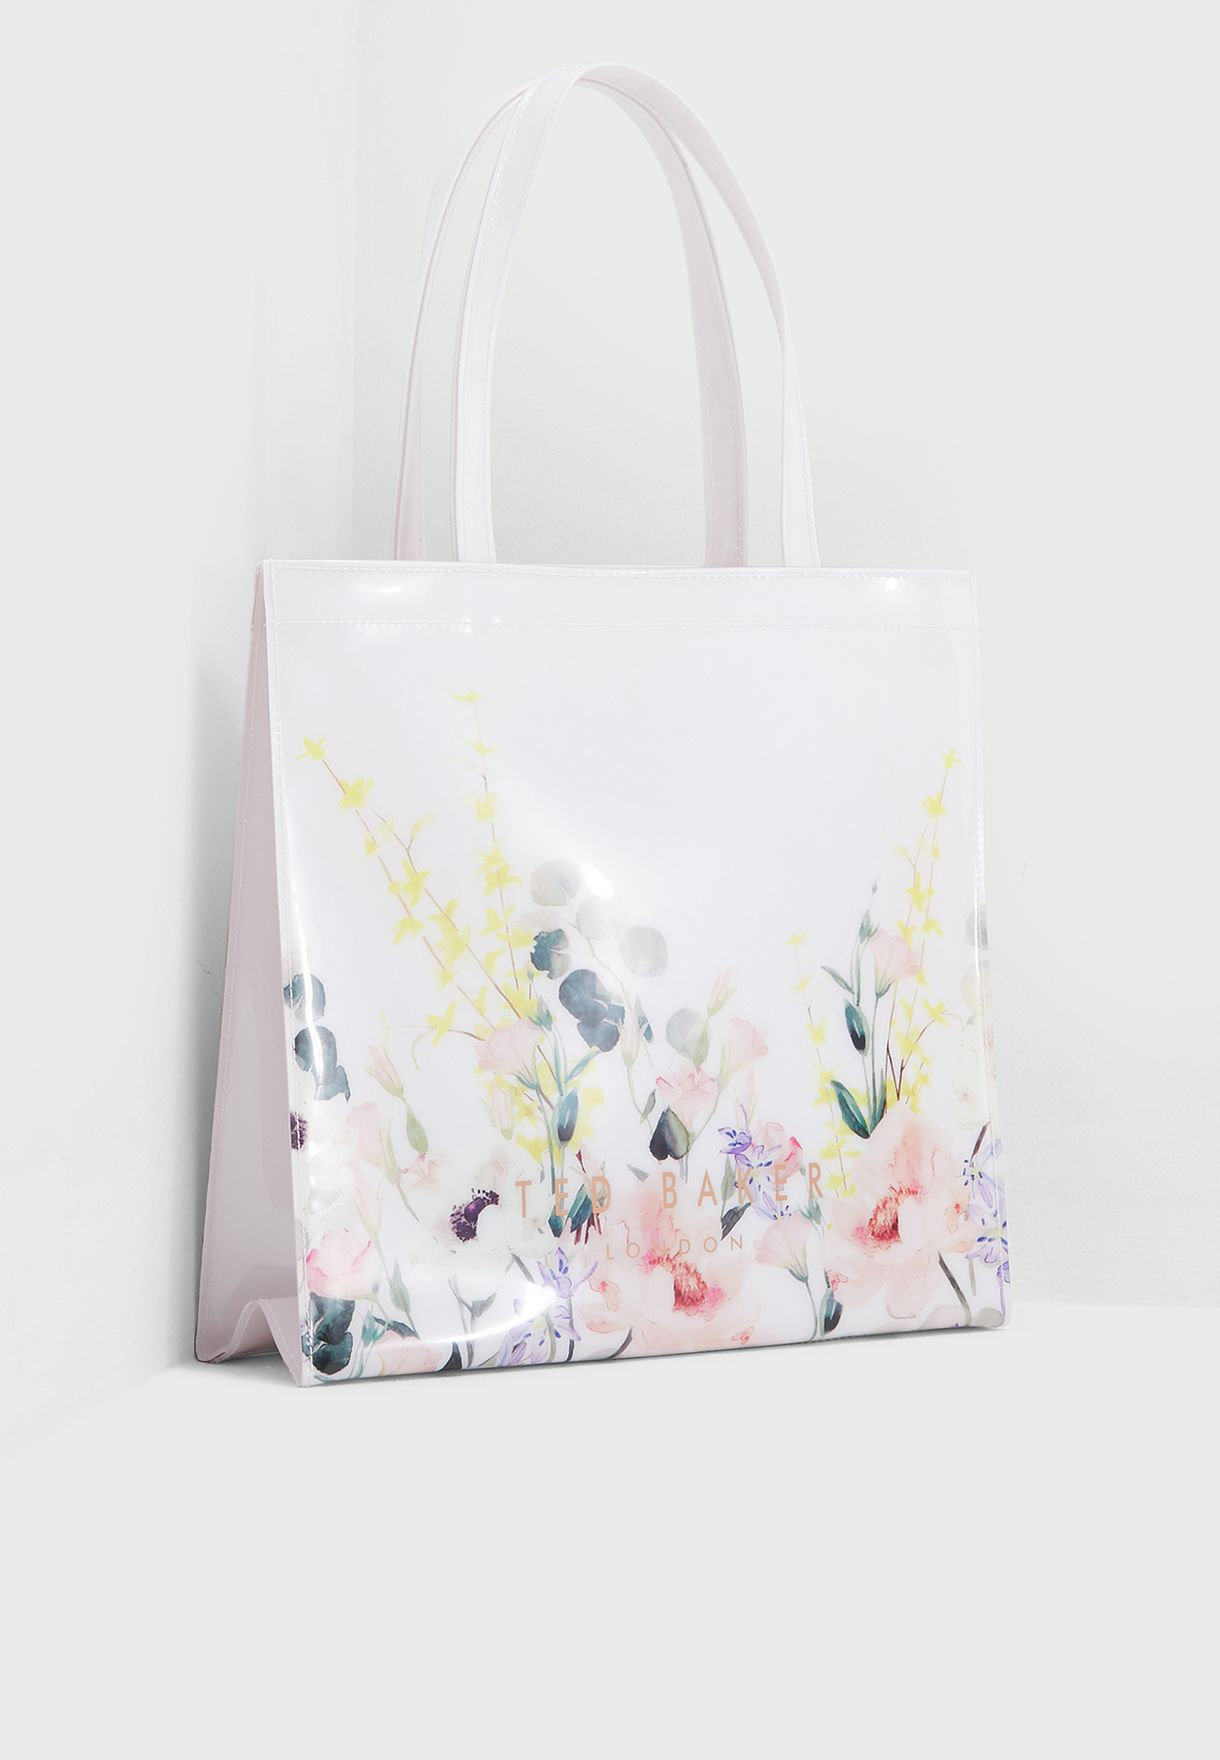 a7025996e270 Shop Ted baker prints Albacon Elegant Large Icon Shopper 151035 for Women  in Qatar - 14416AC52EGP